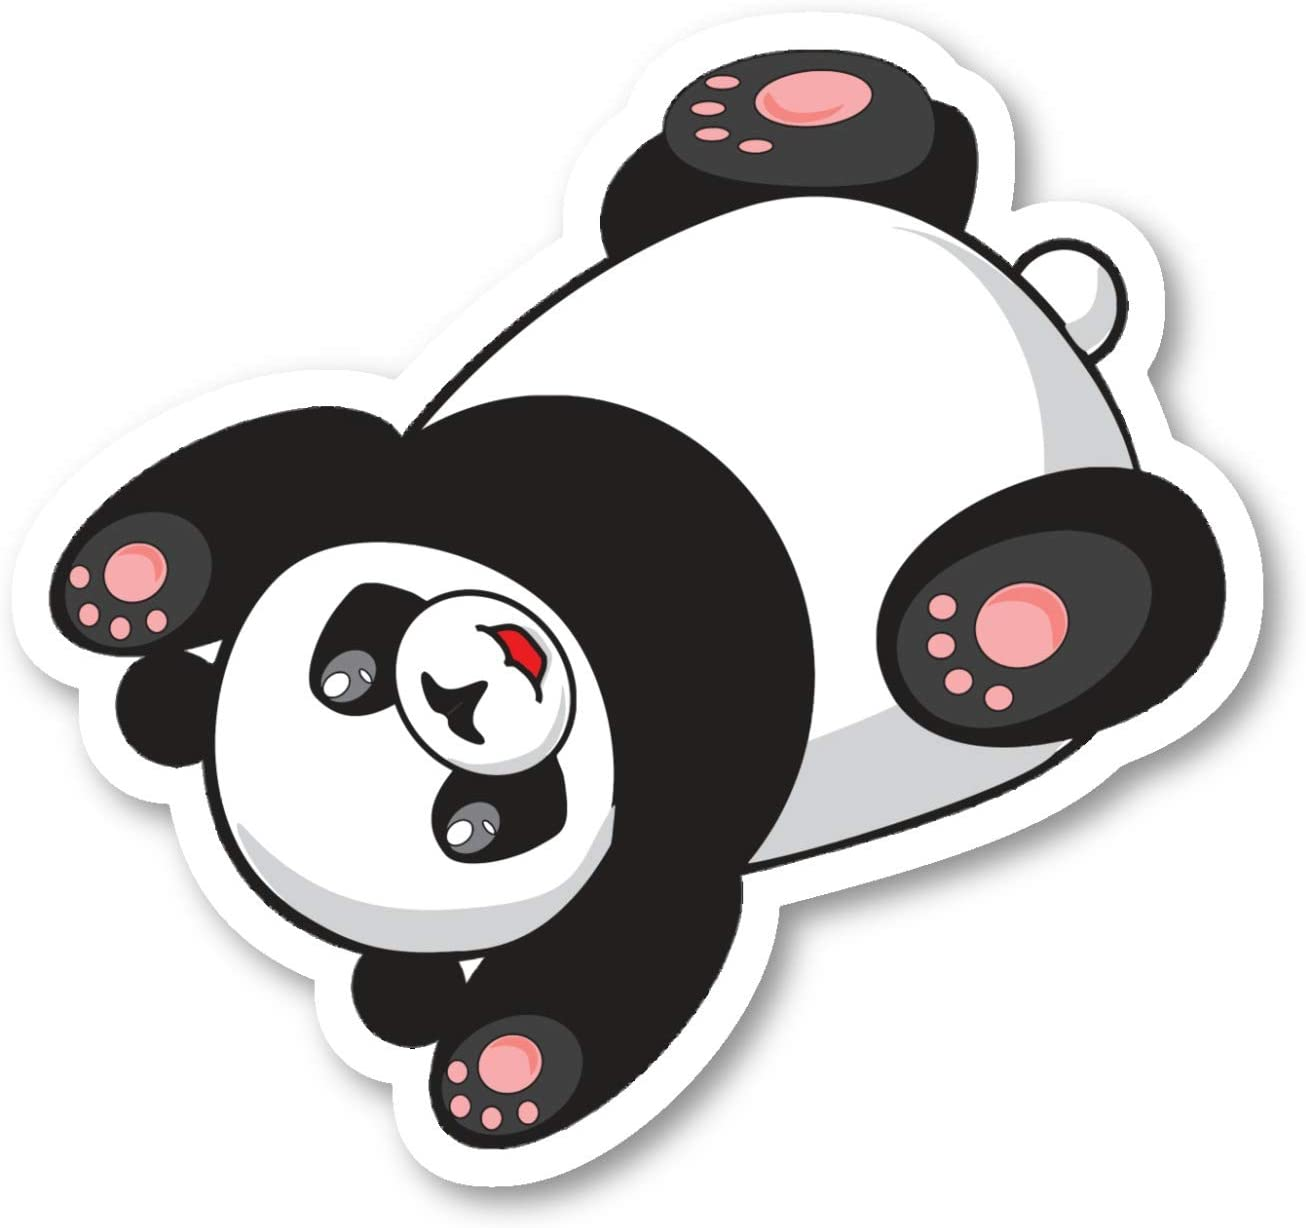 Panda Sticker Cute Panda Stickers - Laptop Stickers - 2.5 Inches Vinyl Decal - Laptop, Phone, Tablet Vinyl Decal Sticker S214564